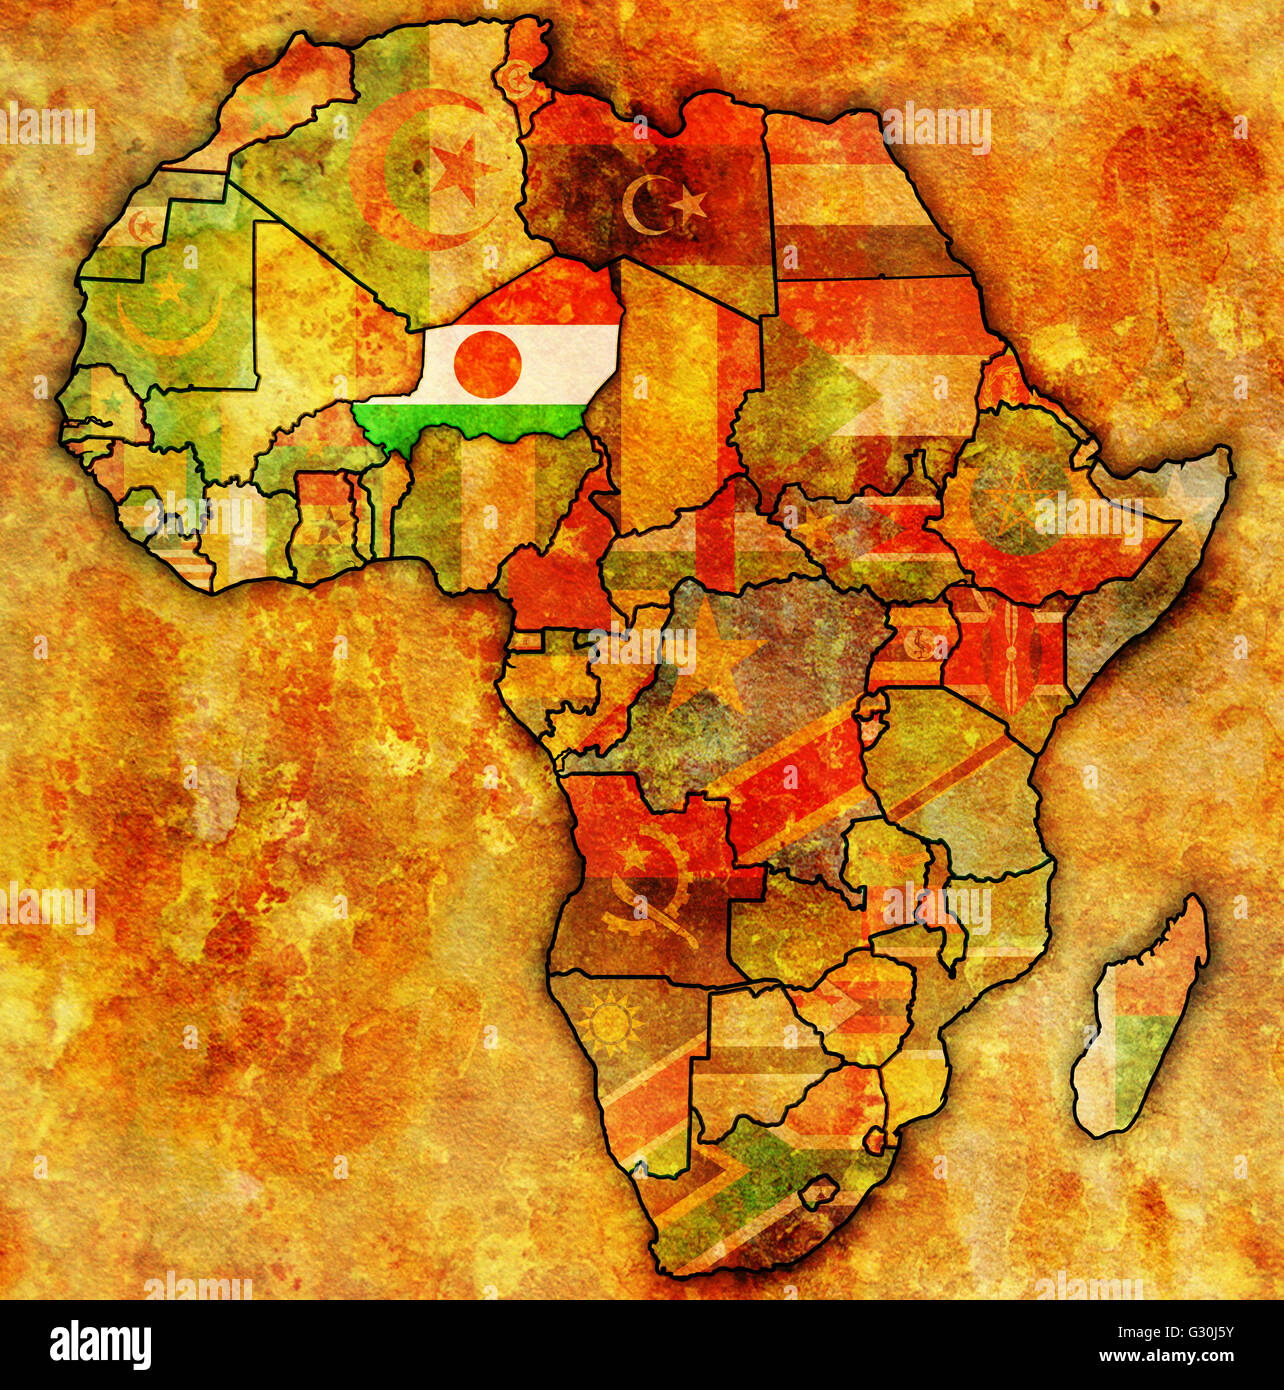 Niger On Actual Vintage Political Map Of Africa With Flags